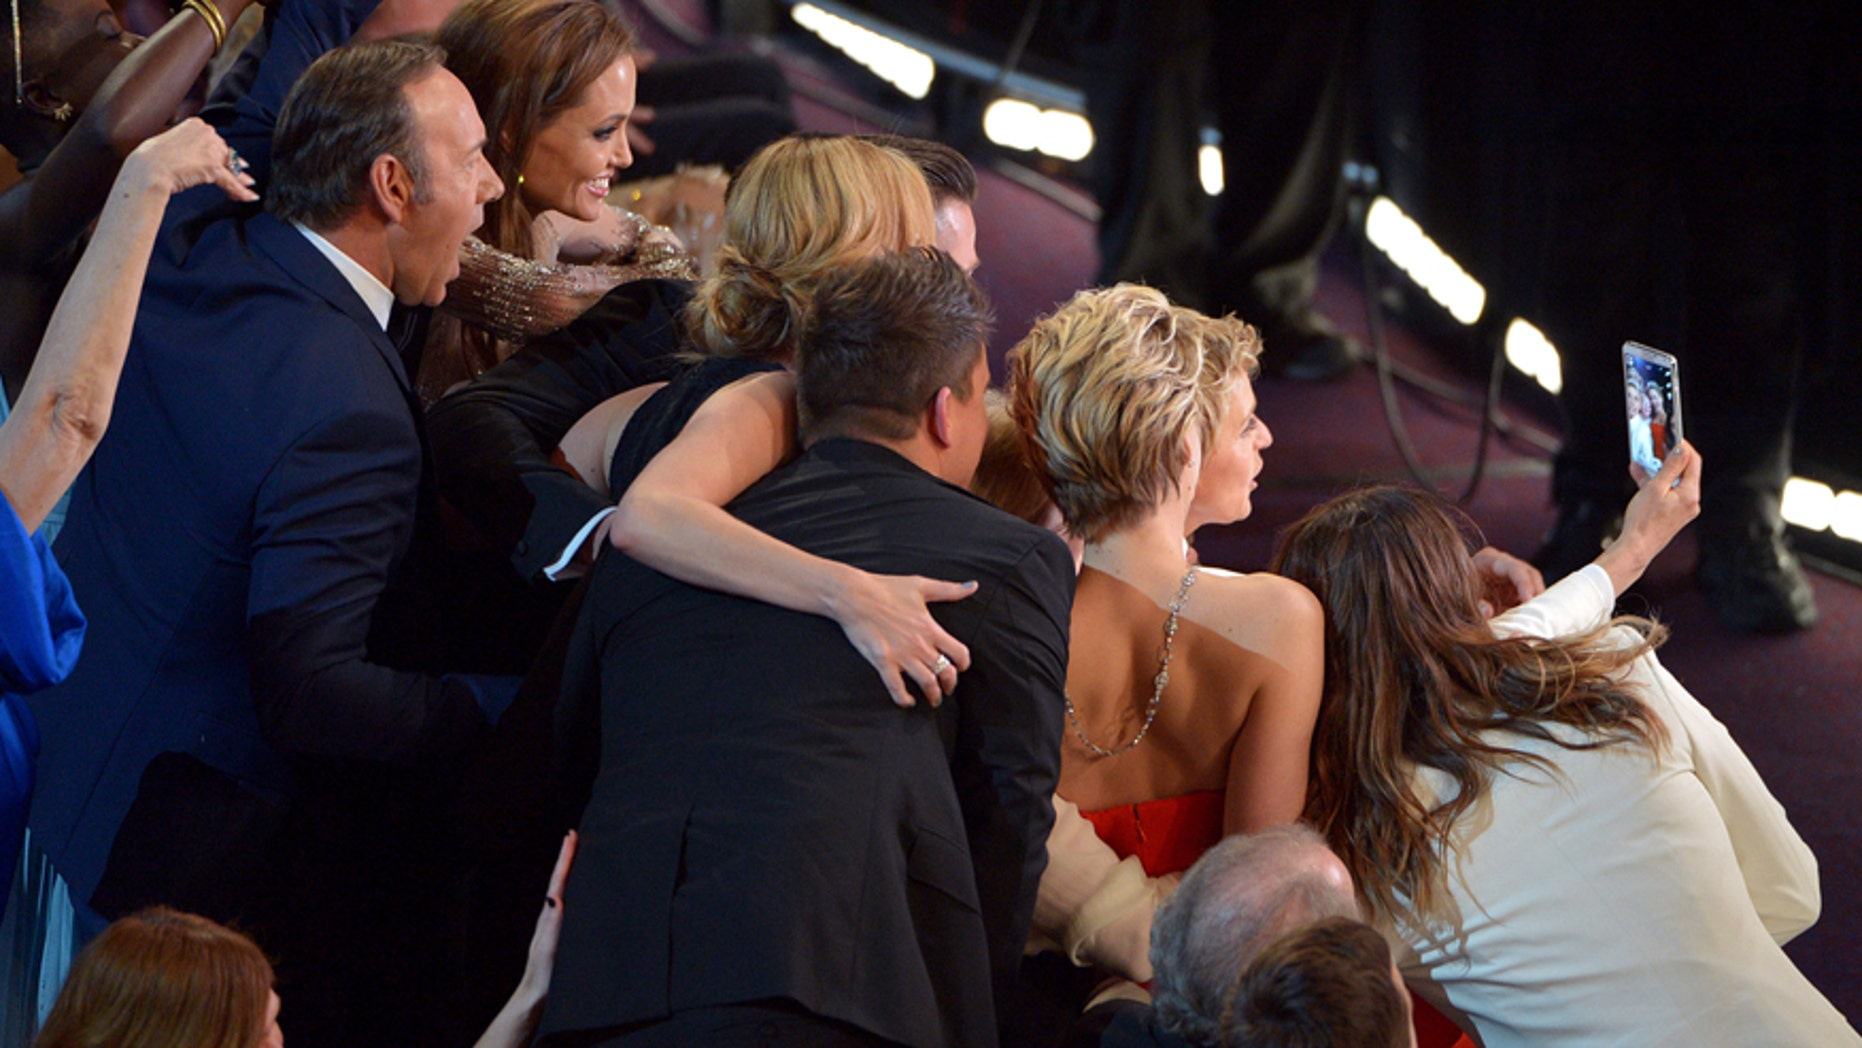 This March 2, 2014 file photo shows Kevin Spacey, from left, Angelina Jolie, Julia Roberts, Brad Pitt, Jennifer Lawrence, Ellen Degeneres and Jared Leto join other celebrities for a group selfie during the Oscars at the Dolby Theatre  in Los Angeles.